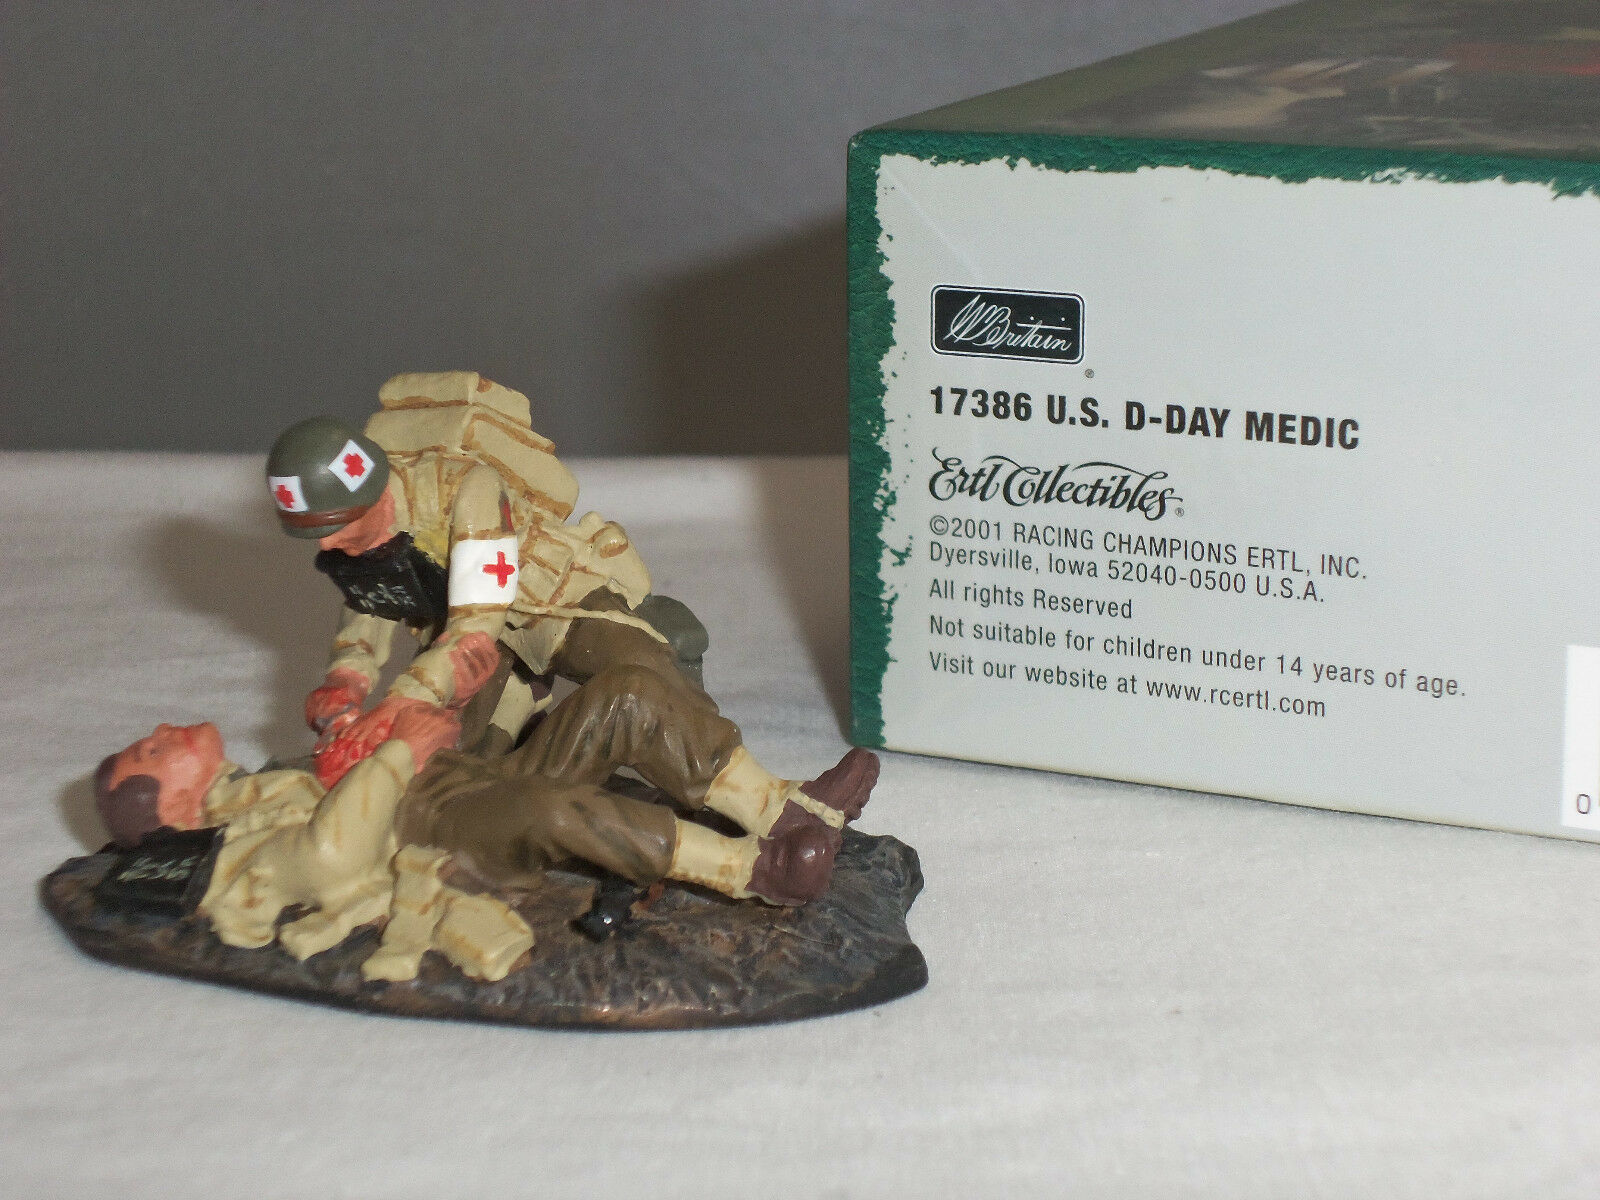 Britains 17386 Army Dday Medic Wounded World War Two Toy Soldier